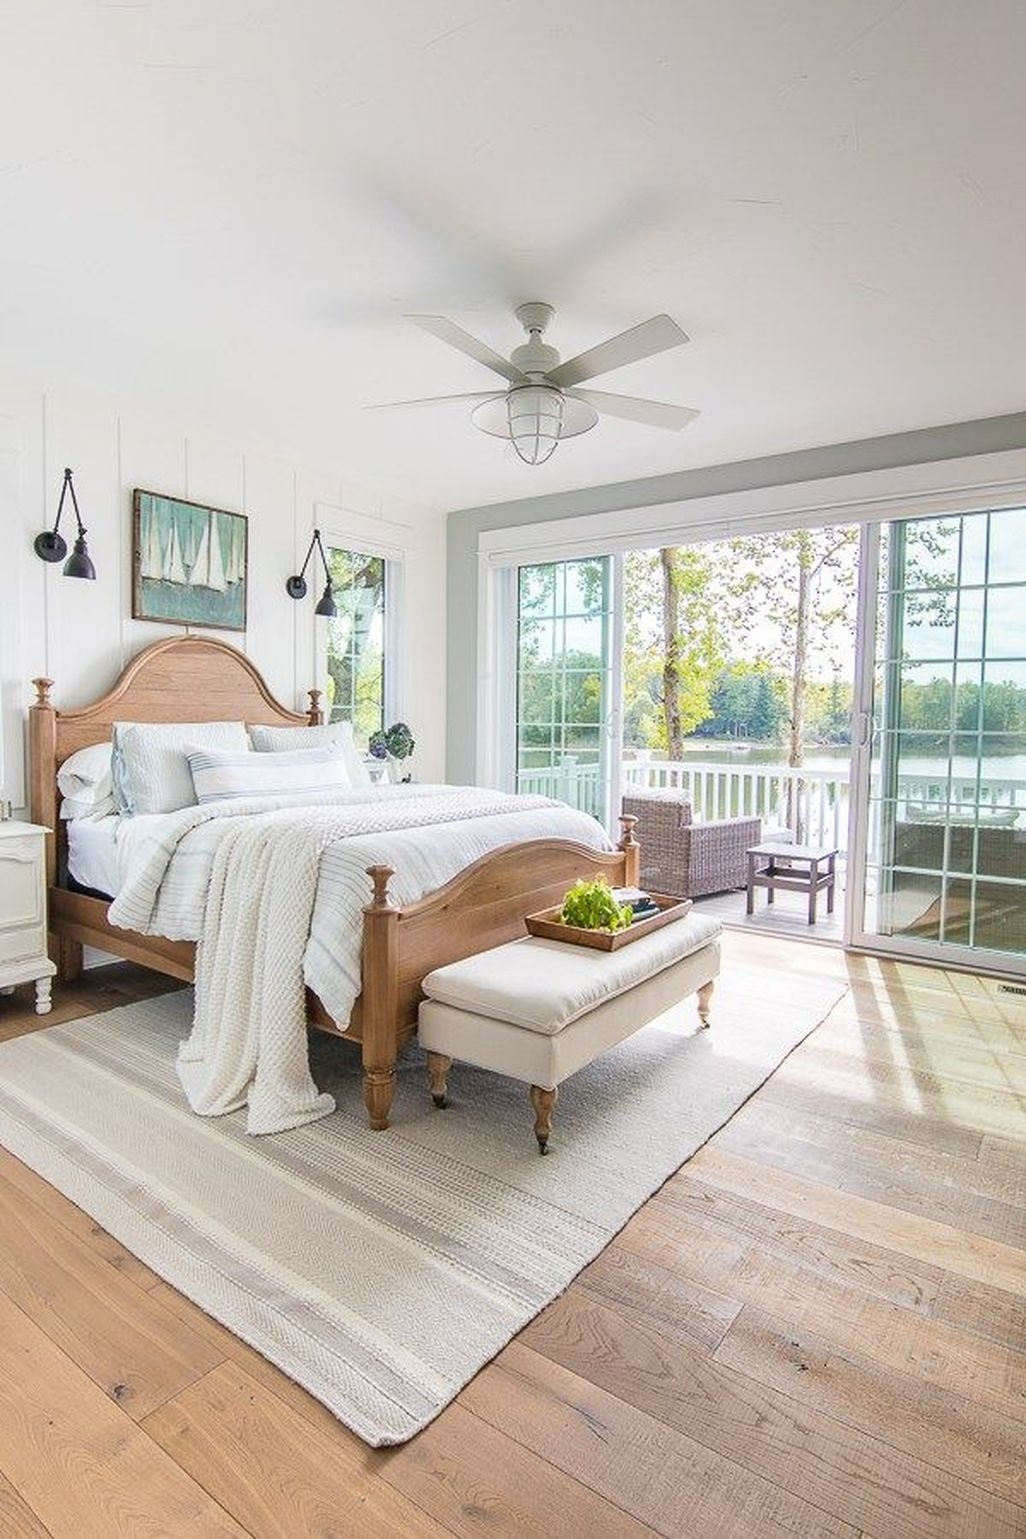 Vintage Nest Bedroom Decoration Ideas You Will Totally Love 01